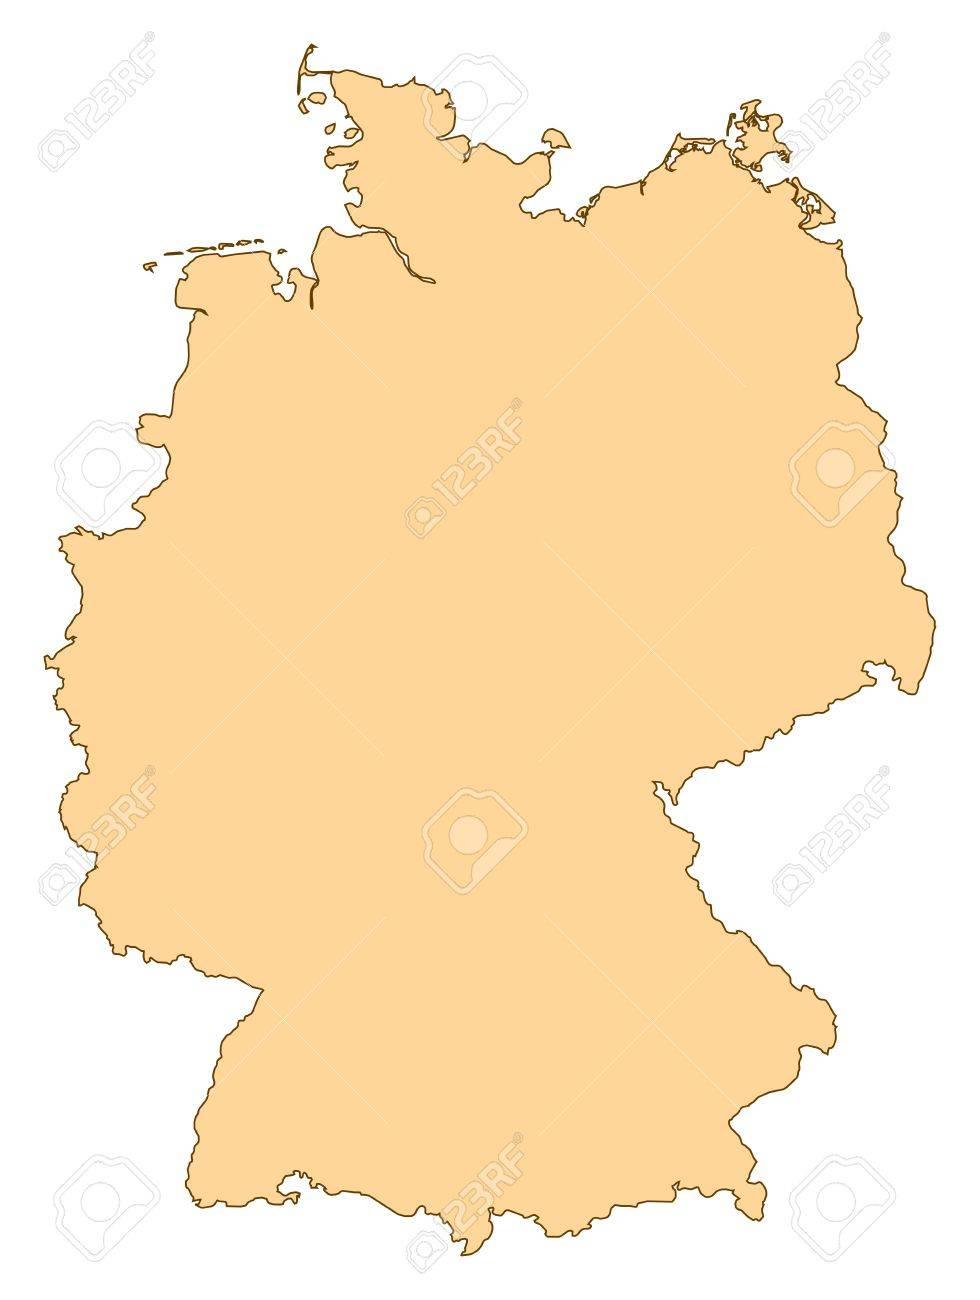 Map Of Germany With The Several Provinces Royalty Free Cliparts - Germany map provinces